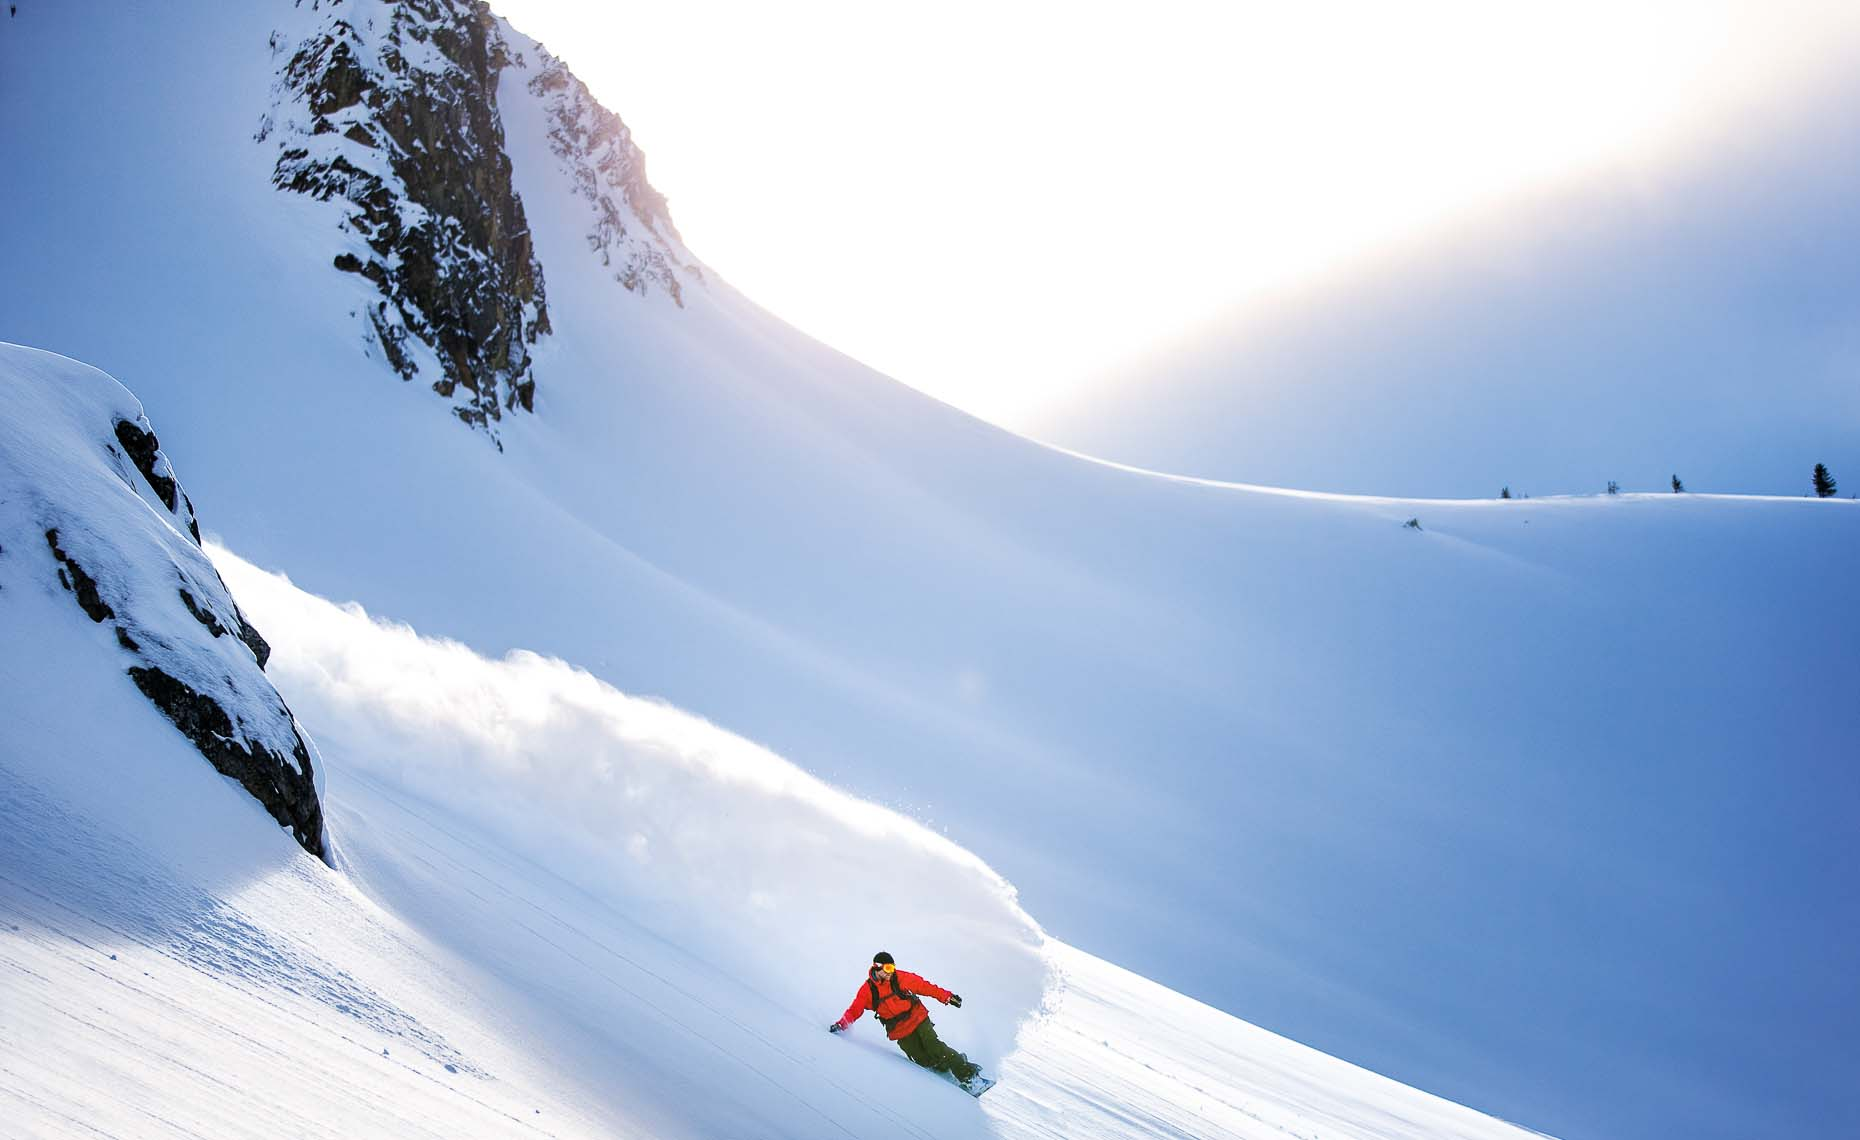 Canadian ski photographer from whistler shows snowboard action